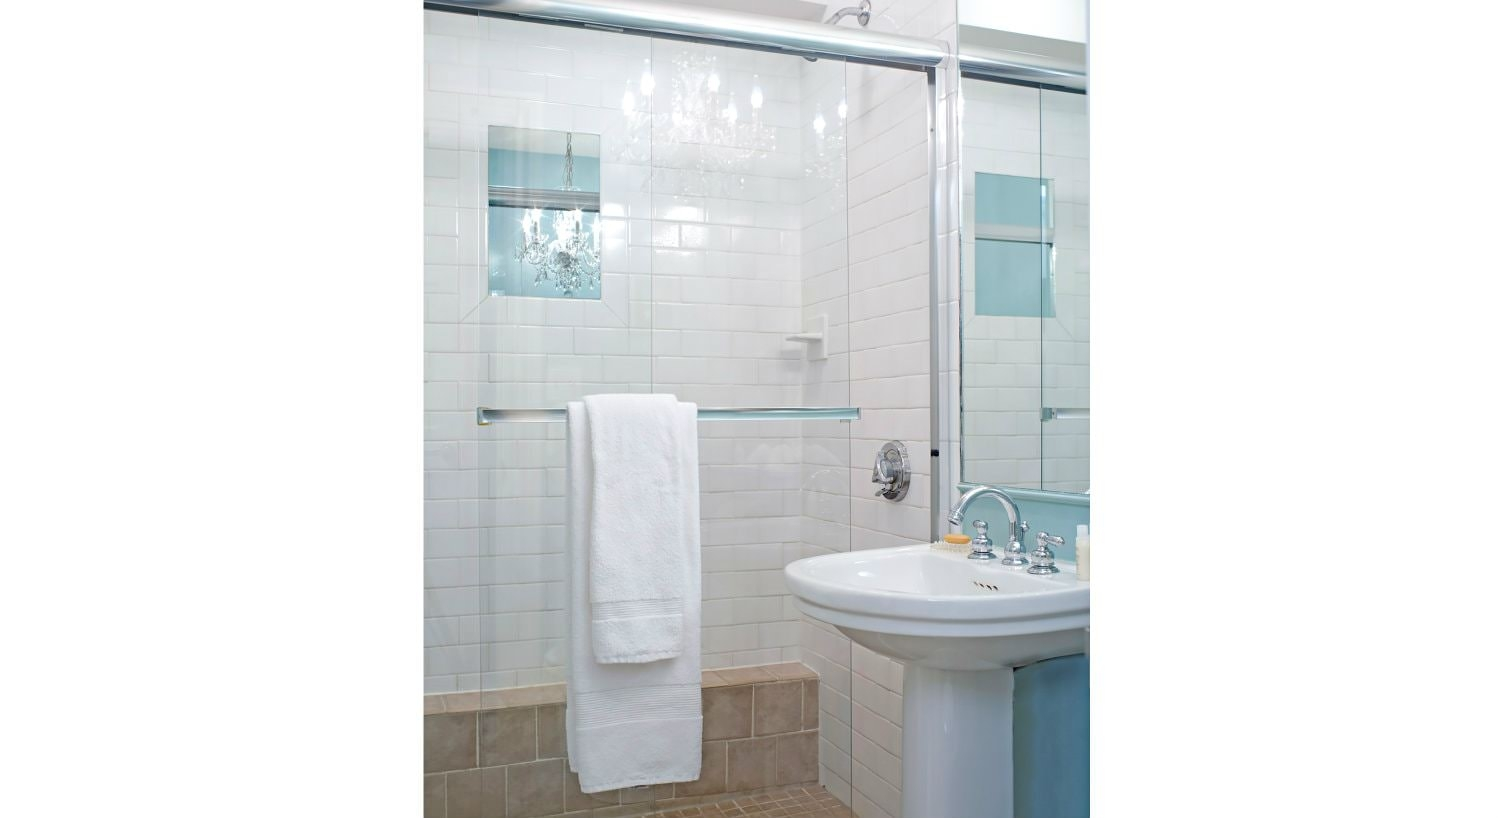 White and blue bathroom with tiled walk-in shower with glass doors and white pedestal sink